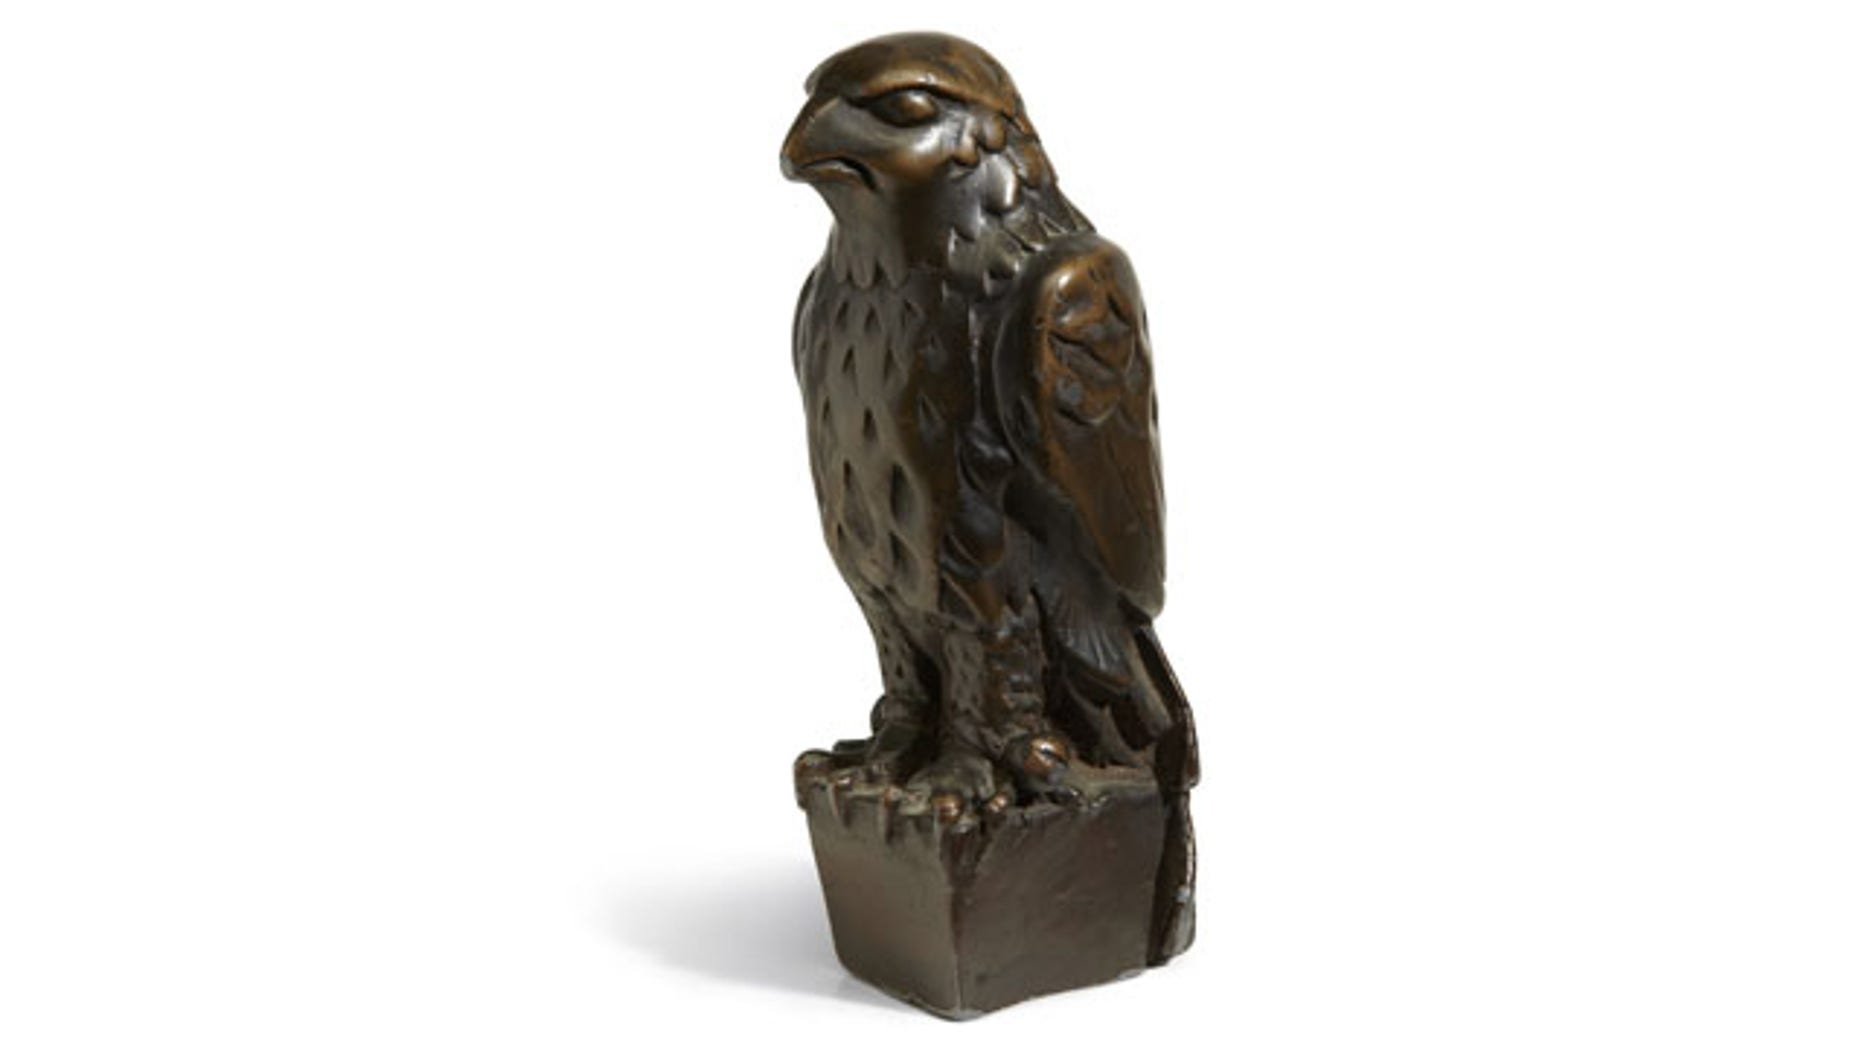 """November 25, 2013: In this undated photo provided by Bonham's Auction House, the """"Maltese Falcon"""" is shown. The 45-pound, 12-inch-tall, black figurine cast in lead that was specifically made for John Huston's screen version of the film bears its name, sold for more than $4 million at auction by Bonham's in New York. (AP Photo)"""